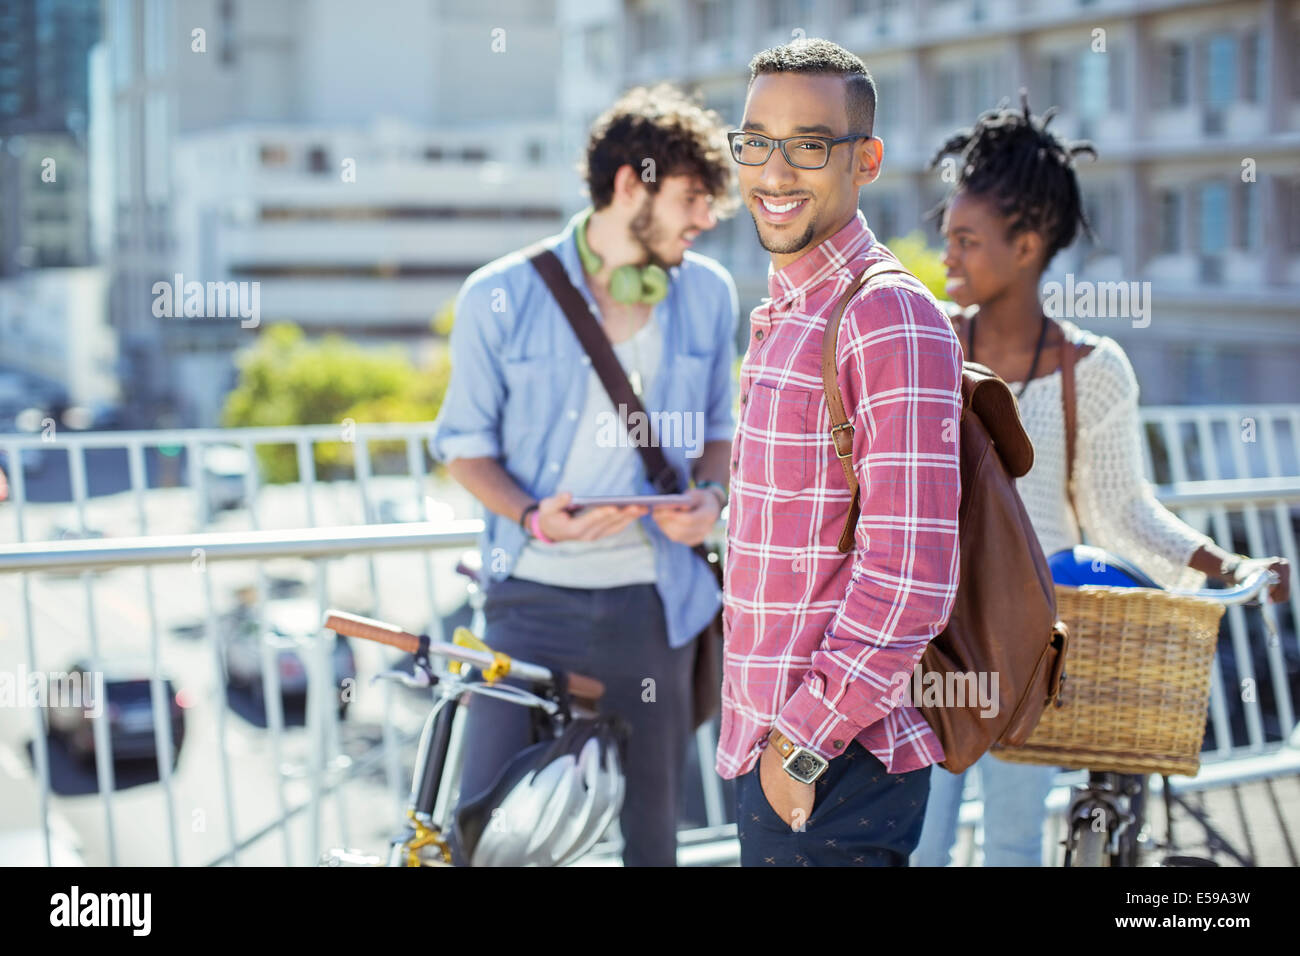 Man smiling on city street Photo Stock